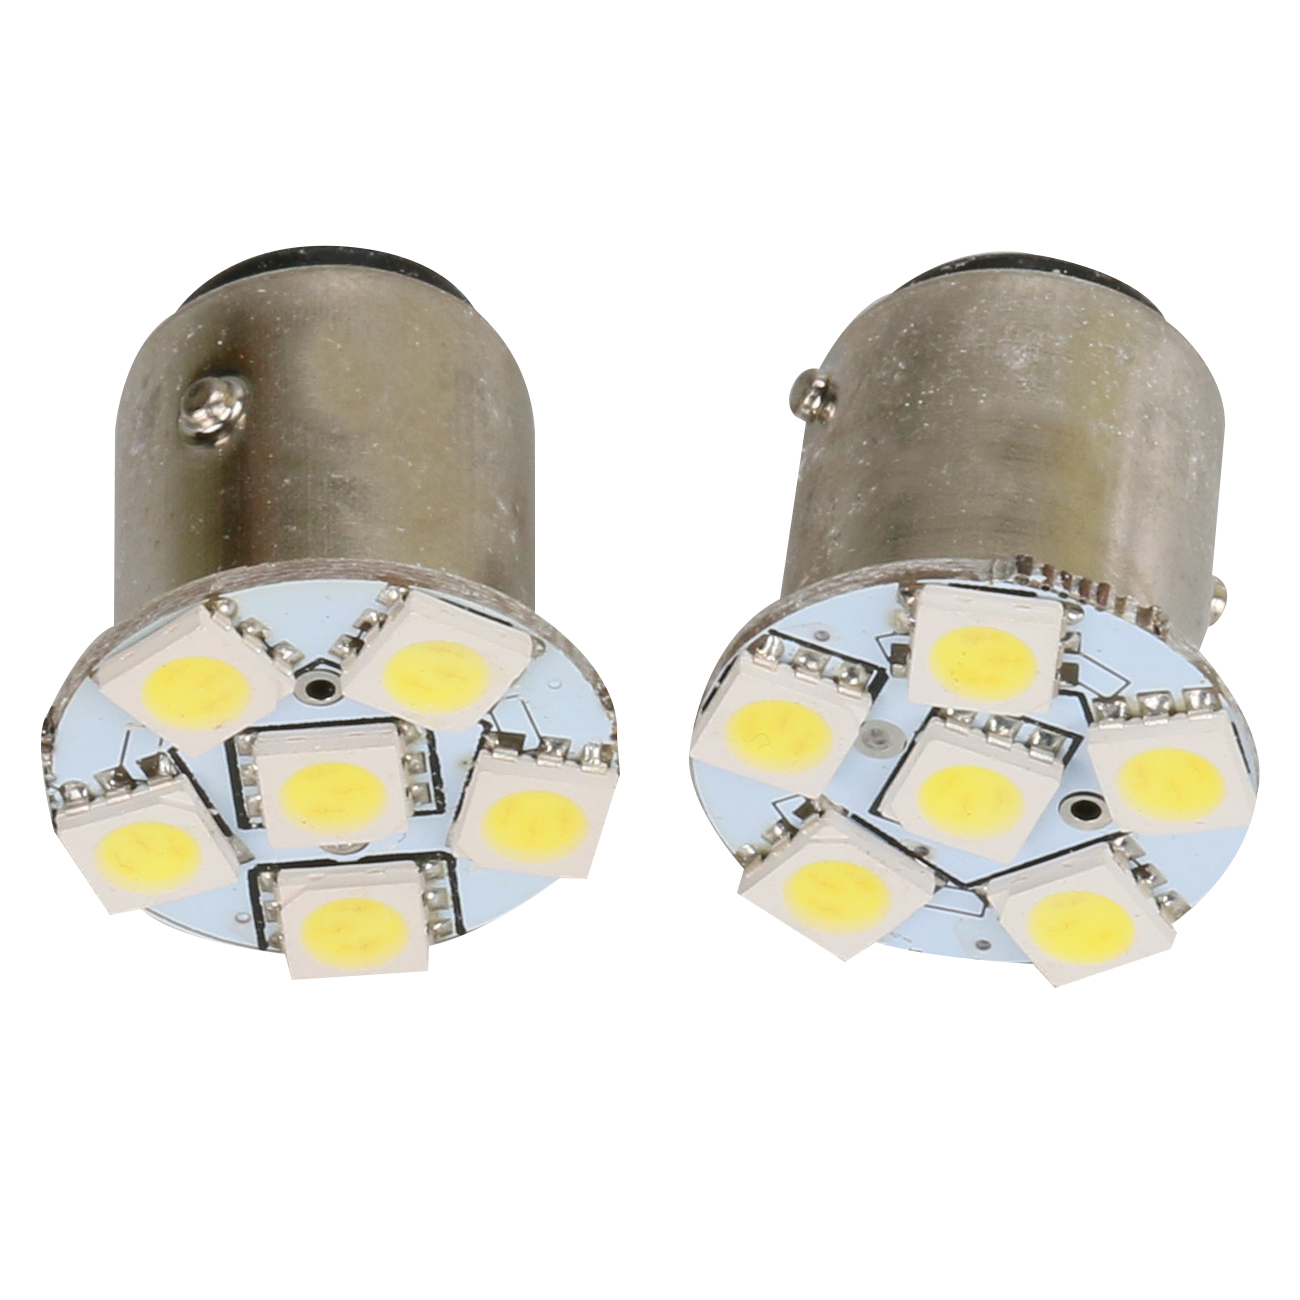 Auto Double Contact Bayonet Lamp Brake Turn Signal Light 5050 SMD LED 6 Emitters Light DC 12V